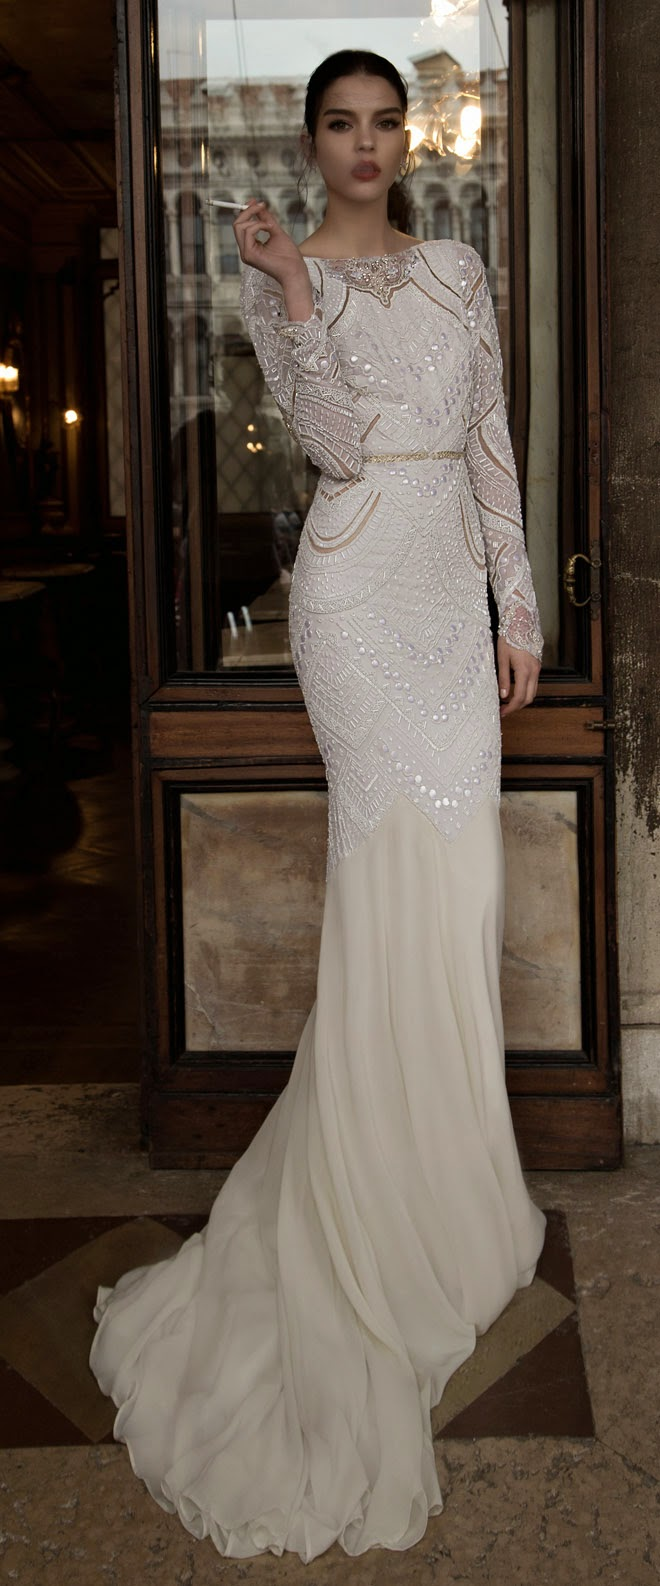 Wedding Dresses Essense of Australia Fall 2015 Wedding Dresses Essense of Australia Fall 2015 new photo